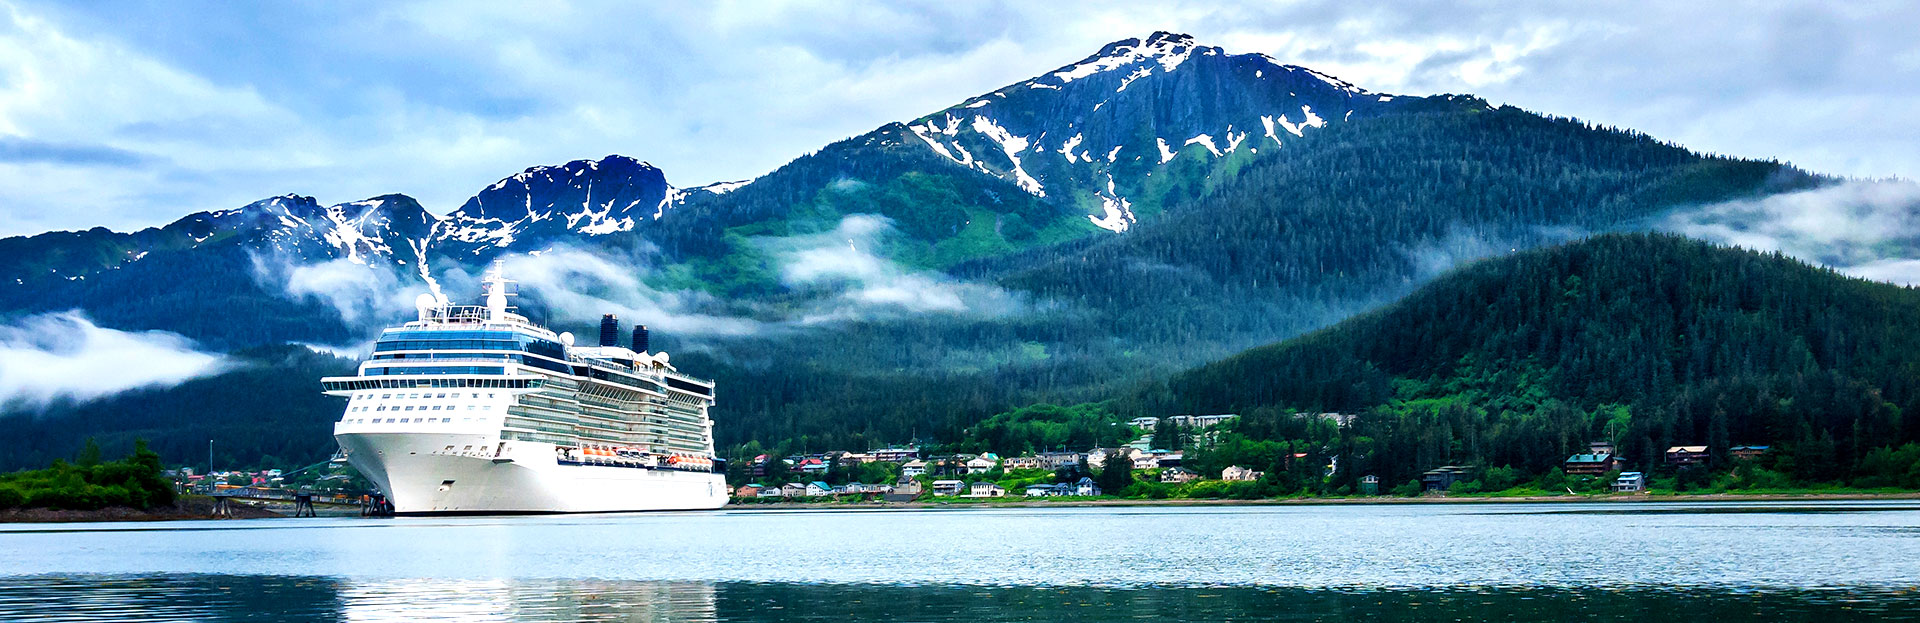 Alaska Cruises from Seattle-Vancouver with Flights from Toronto